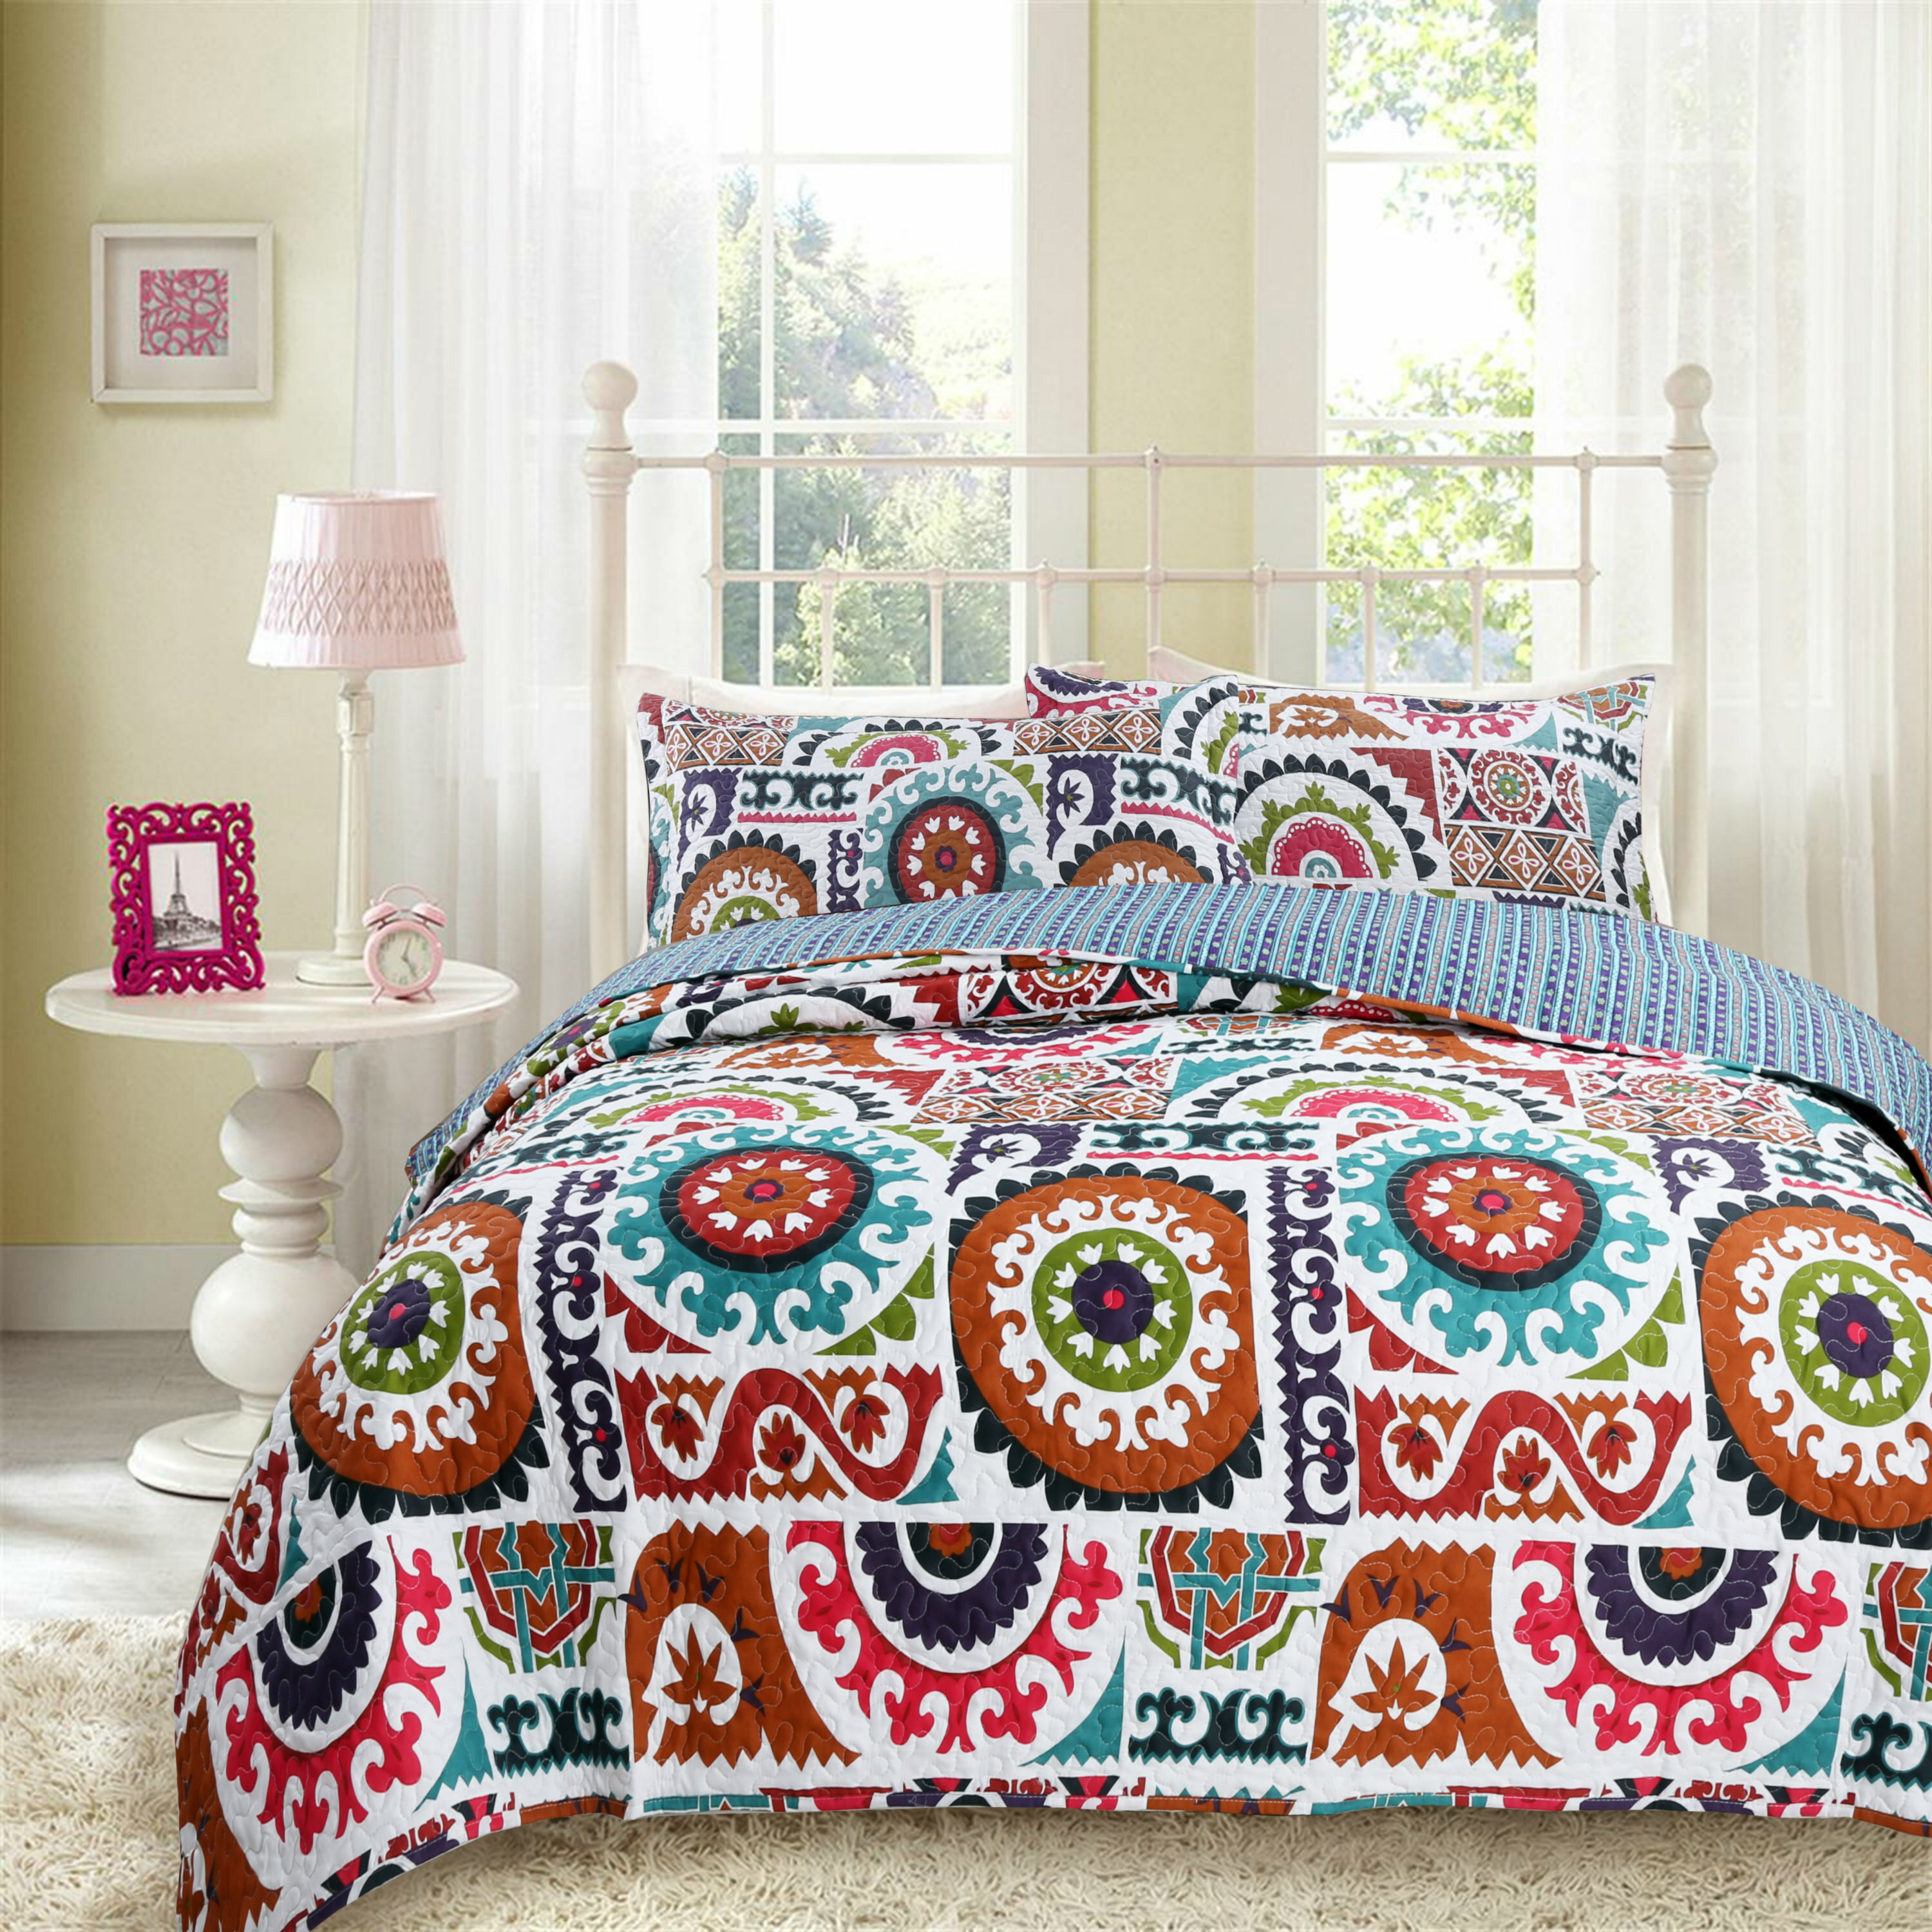 deals paisley shopping modern on at alibaba com colorful ethnic quilt cover get bohemian piece cheap quotations line quilts duvet boho set reversible find striped pattern bedding cotton guides